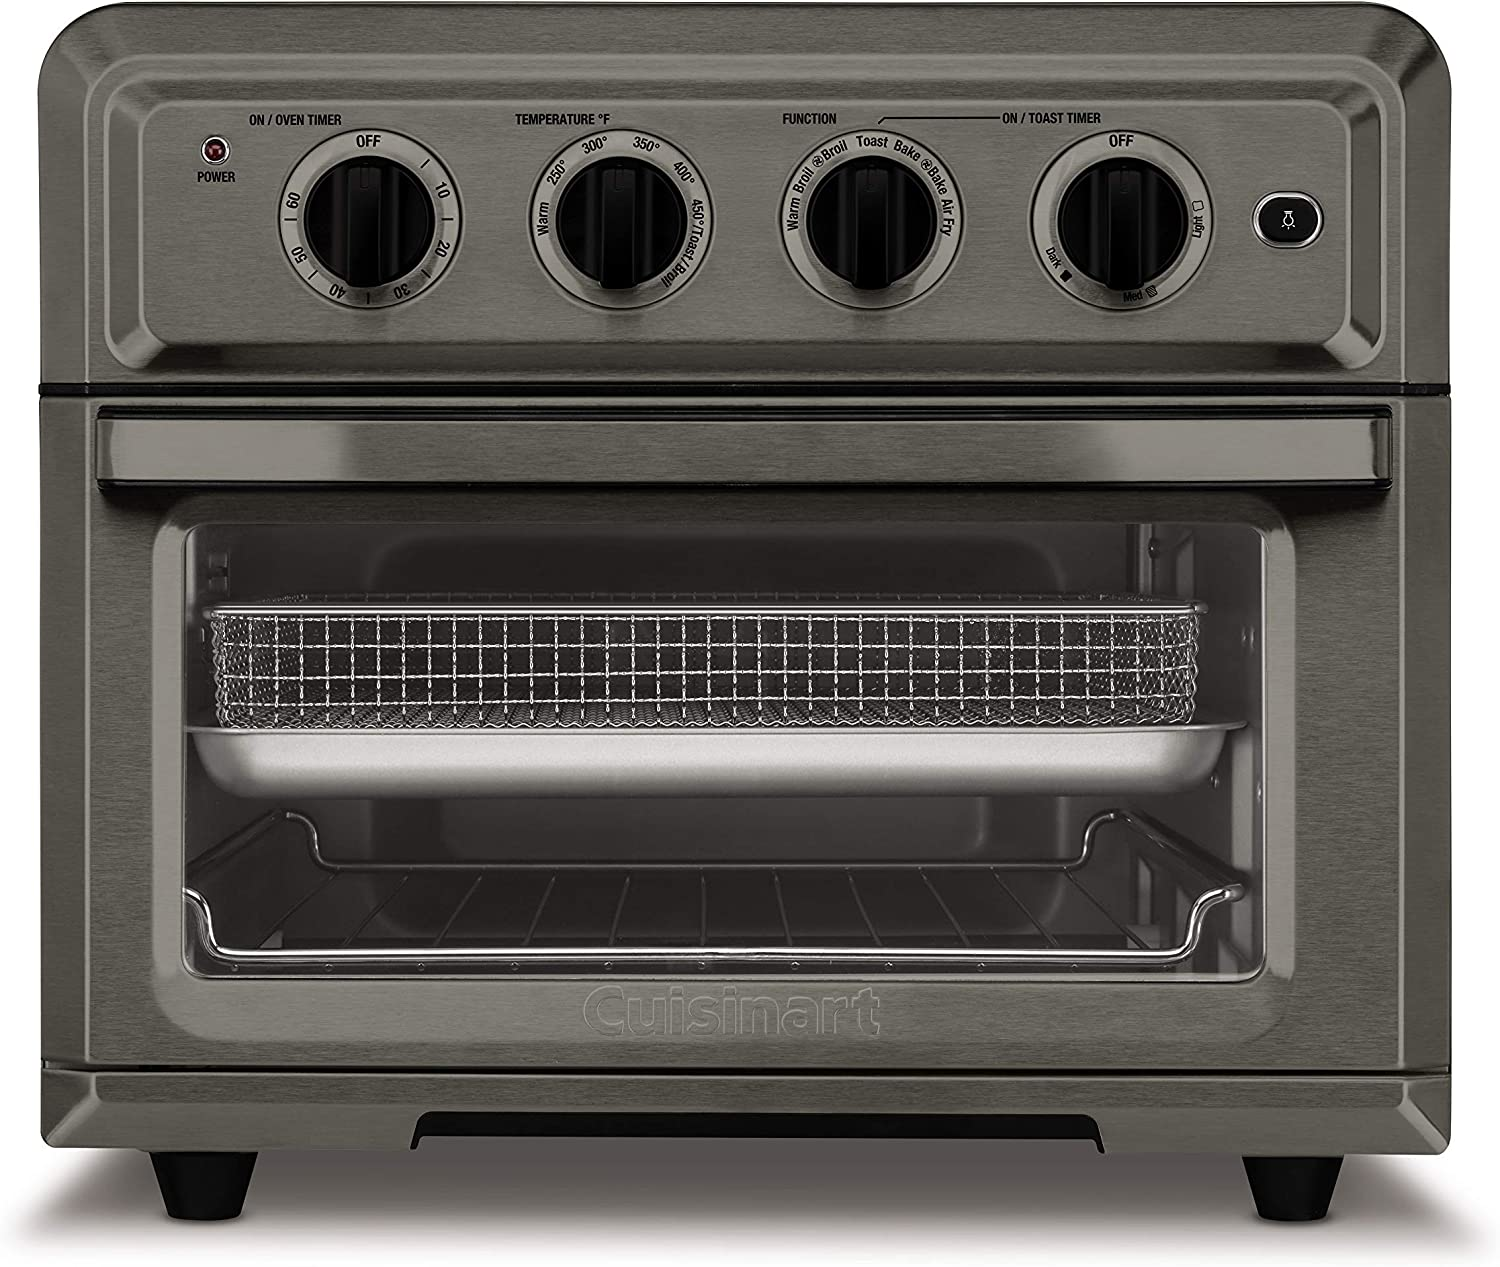 Cuisinart TOA-60BKS Convection Toaster Oven Airfryer, Black SS (Renewed)